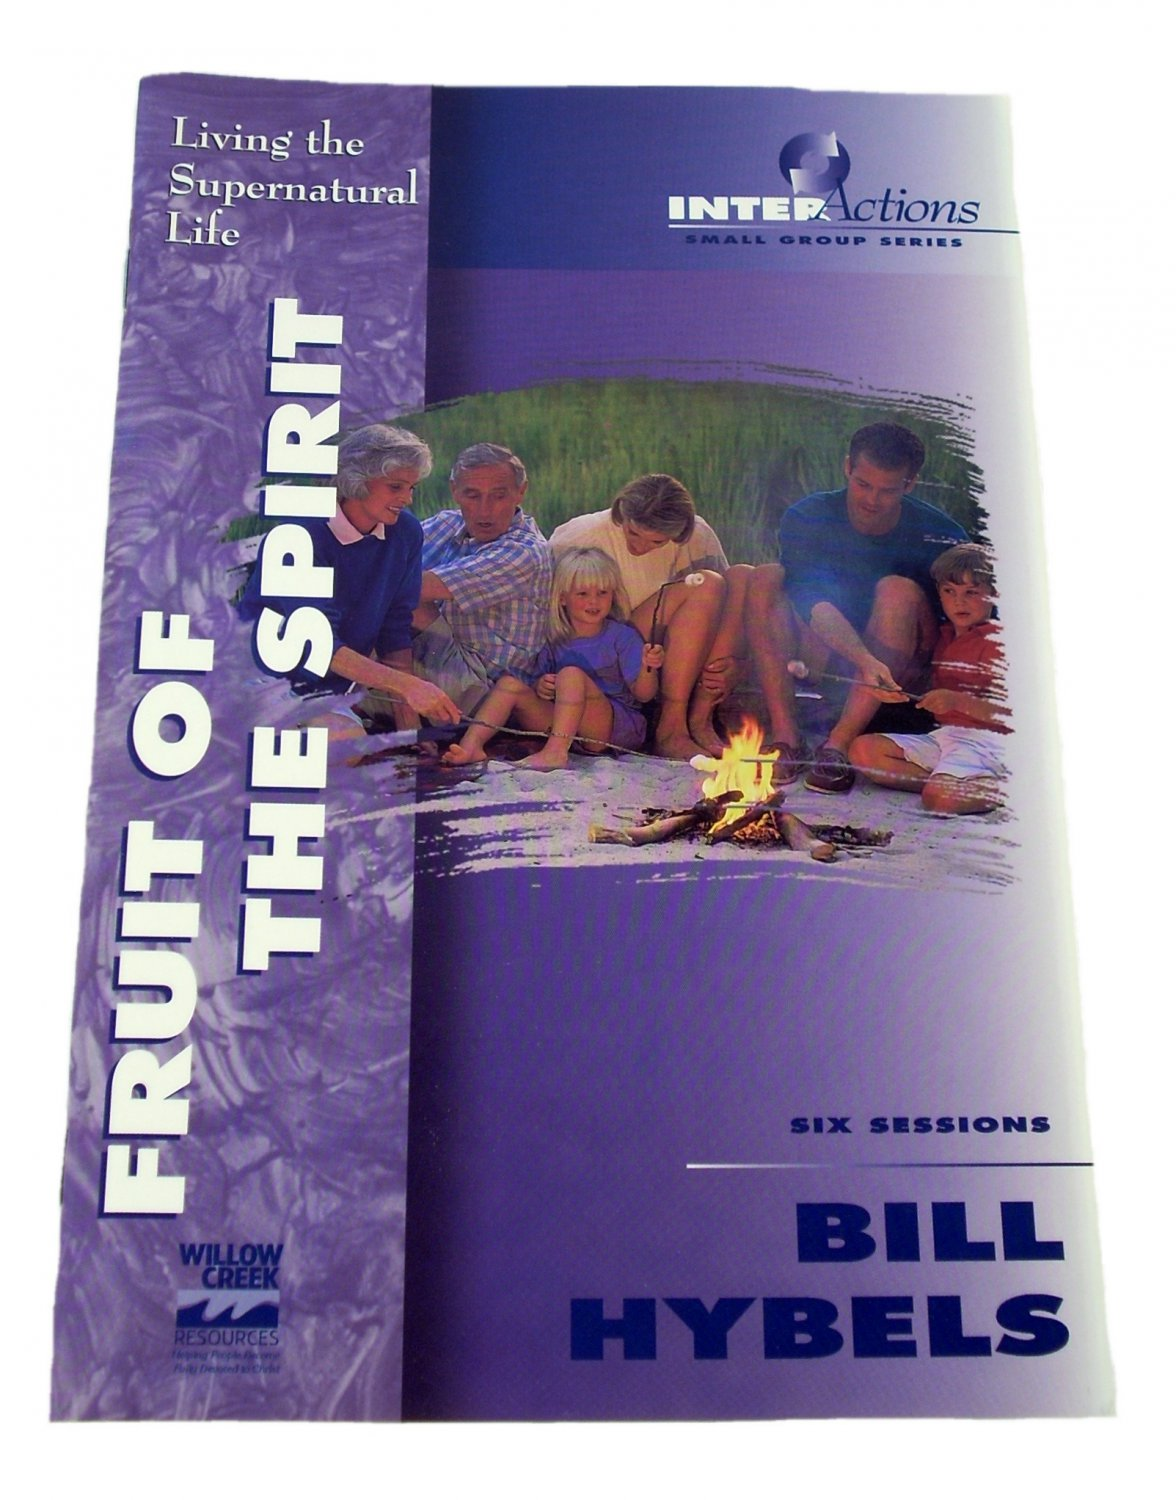 Living the Supernatural Life: Fruit of the Spirit by Bill Hybels Paperback 1998